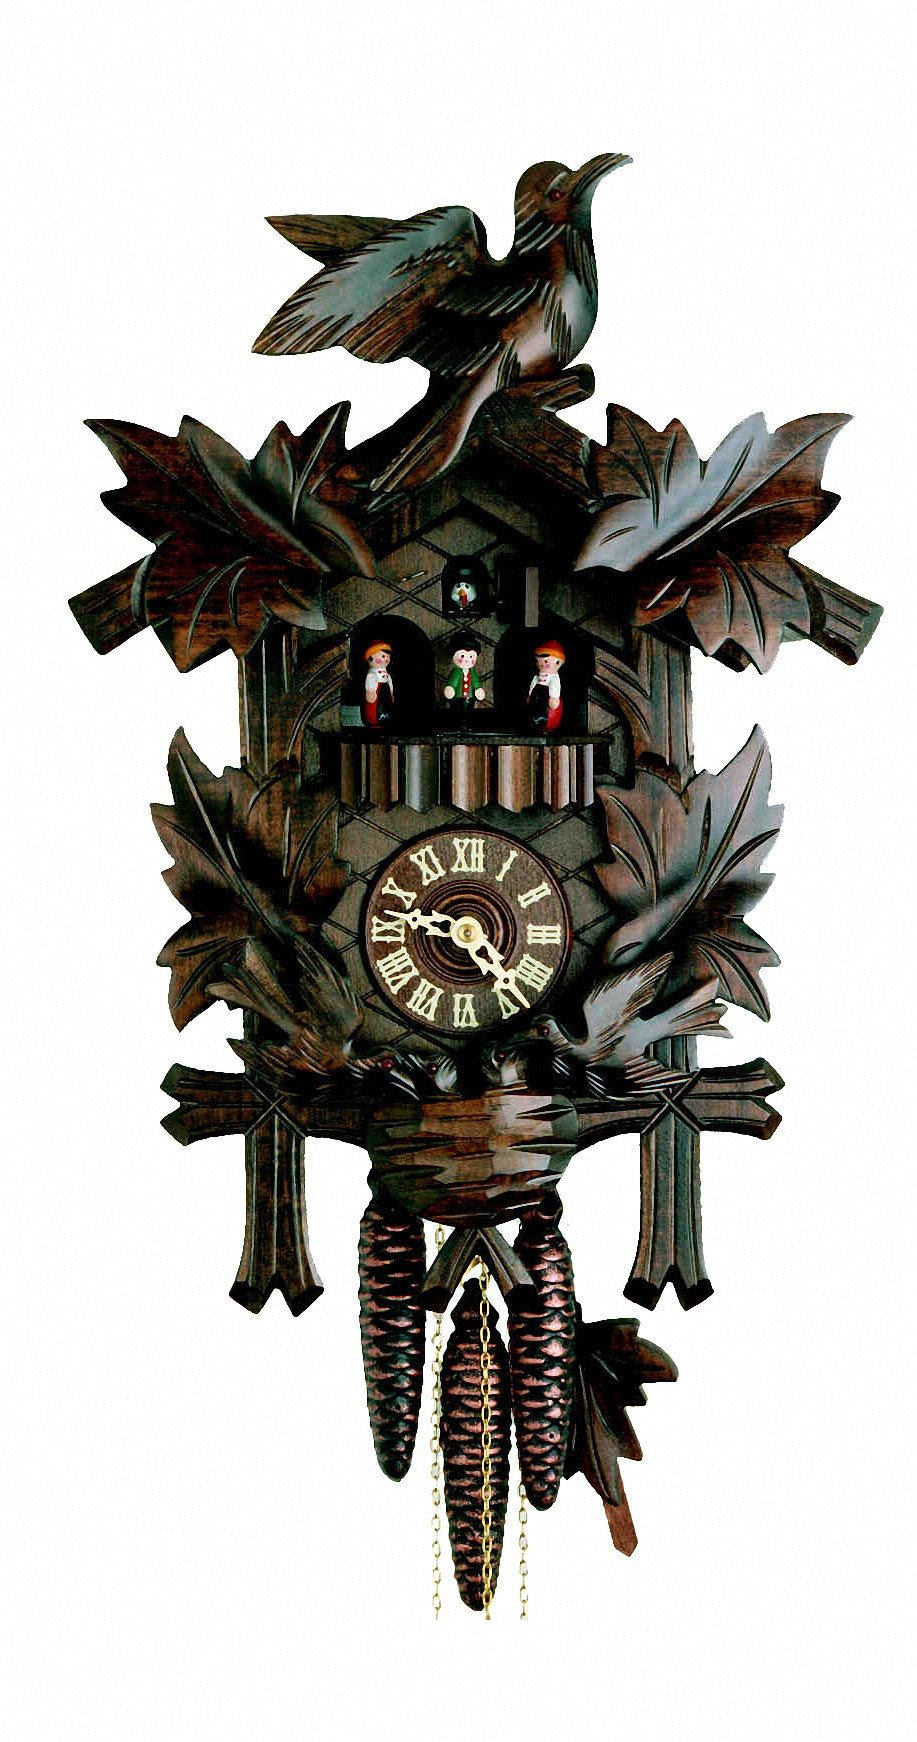 Cuckoo Clock Four Leaves with Feeding Birds and Nest 8-Day Music